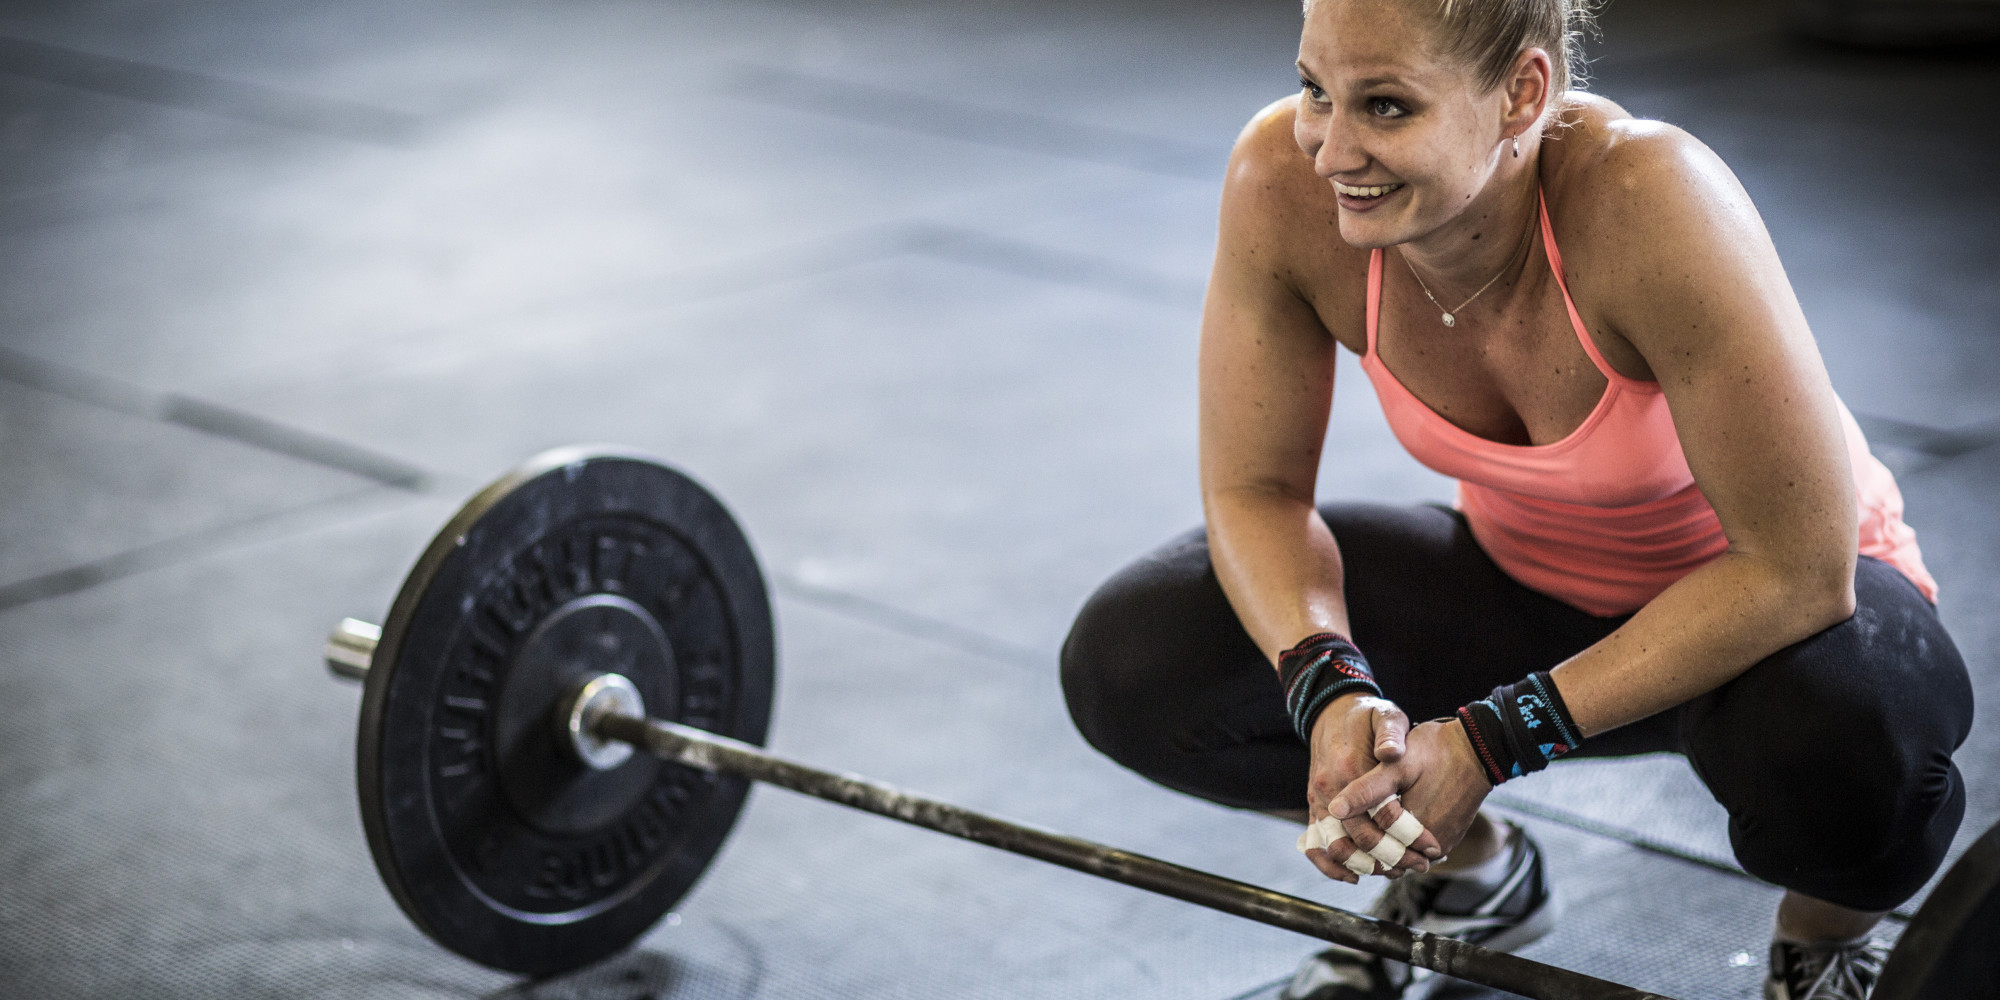 5 Strength Training Truths Every Woman Should Know | HuffPost